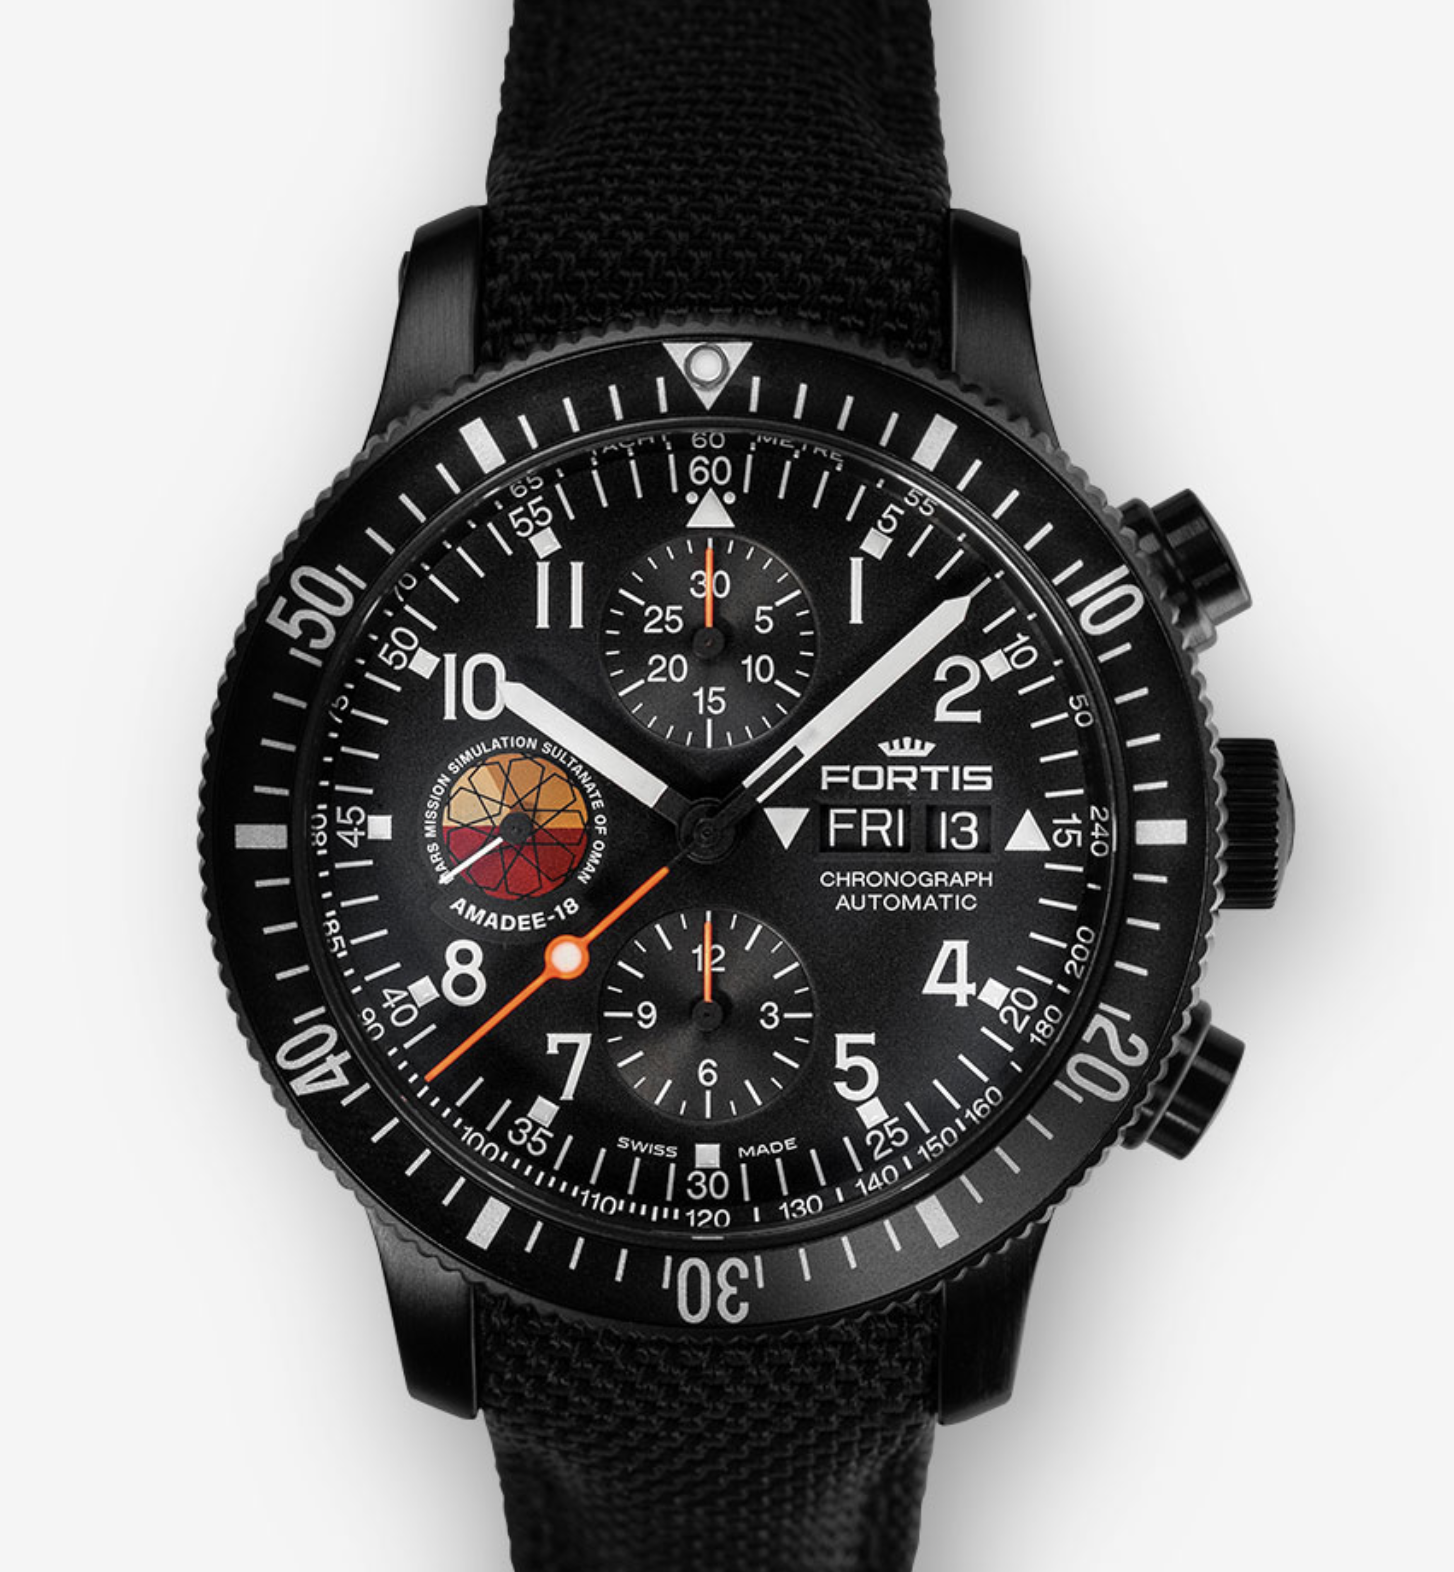 FORTIS OFFICIAL COSMONAUTS AMADEE-18, 638.18.91